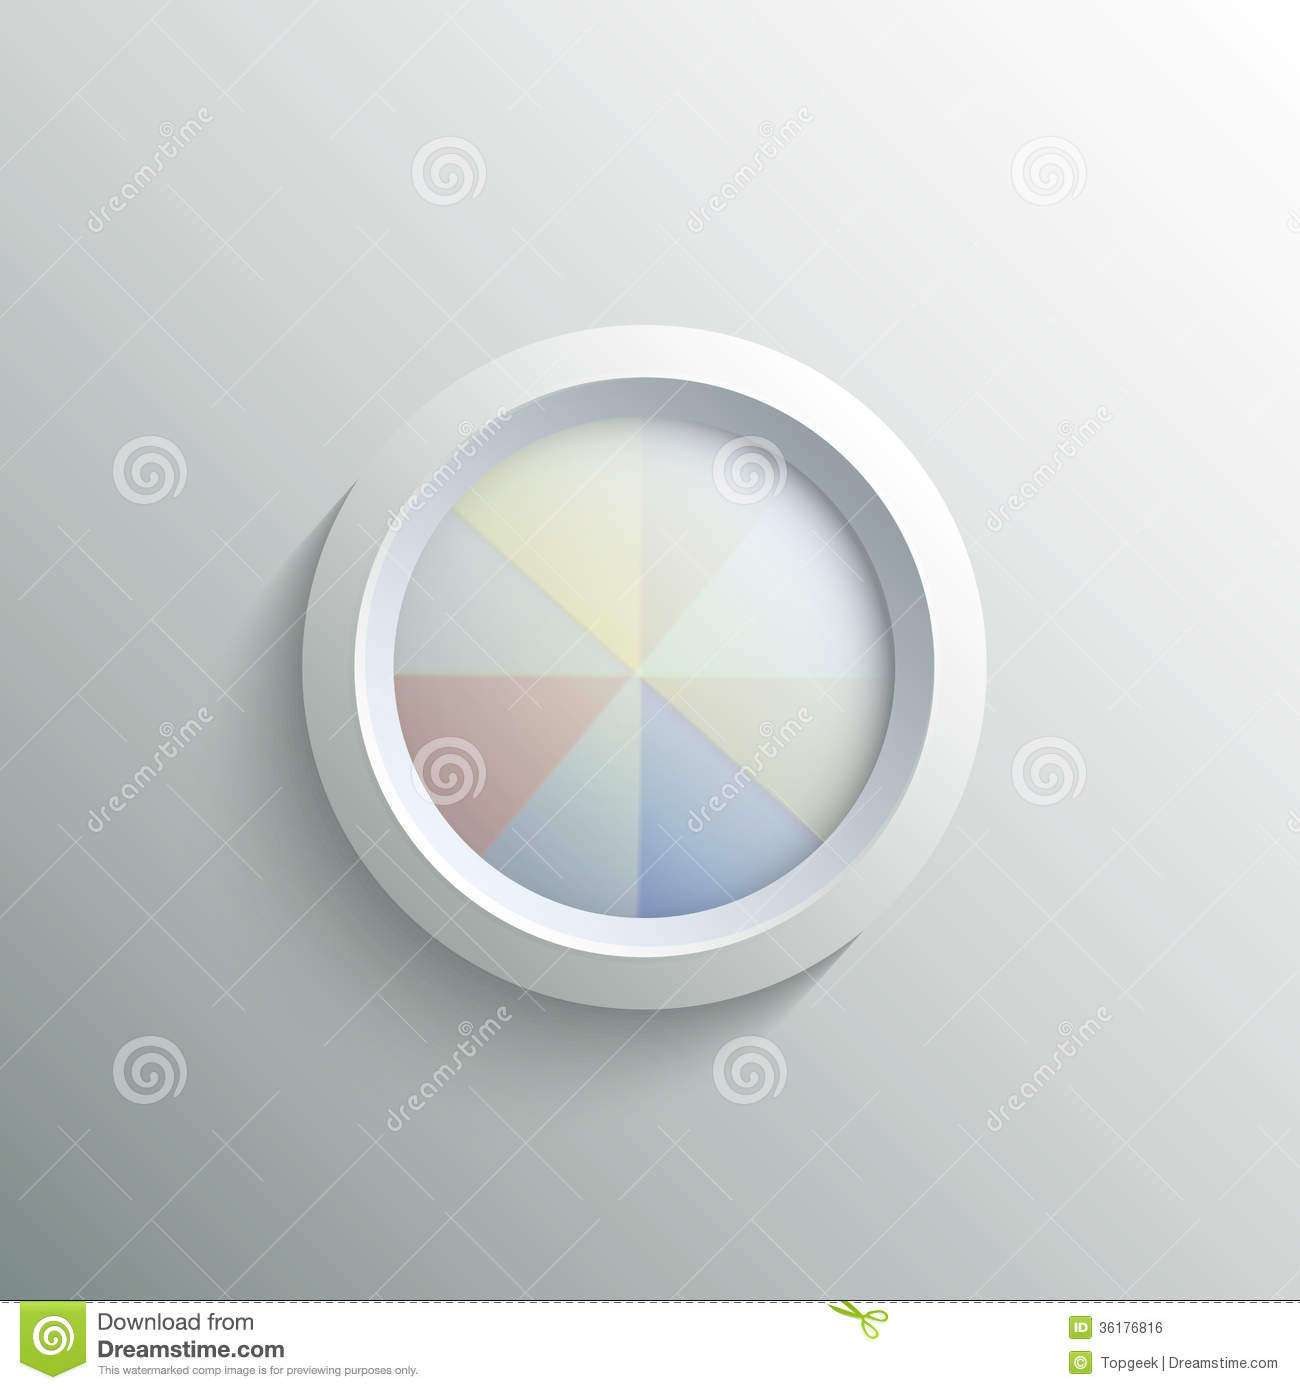 Abstract 3d Circle Stock Vector. Illustration Of Button